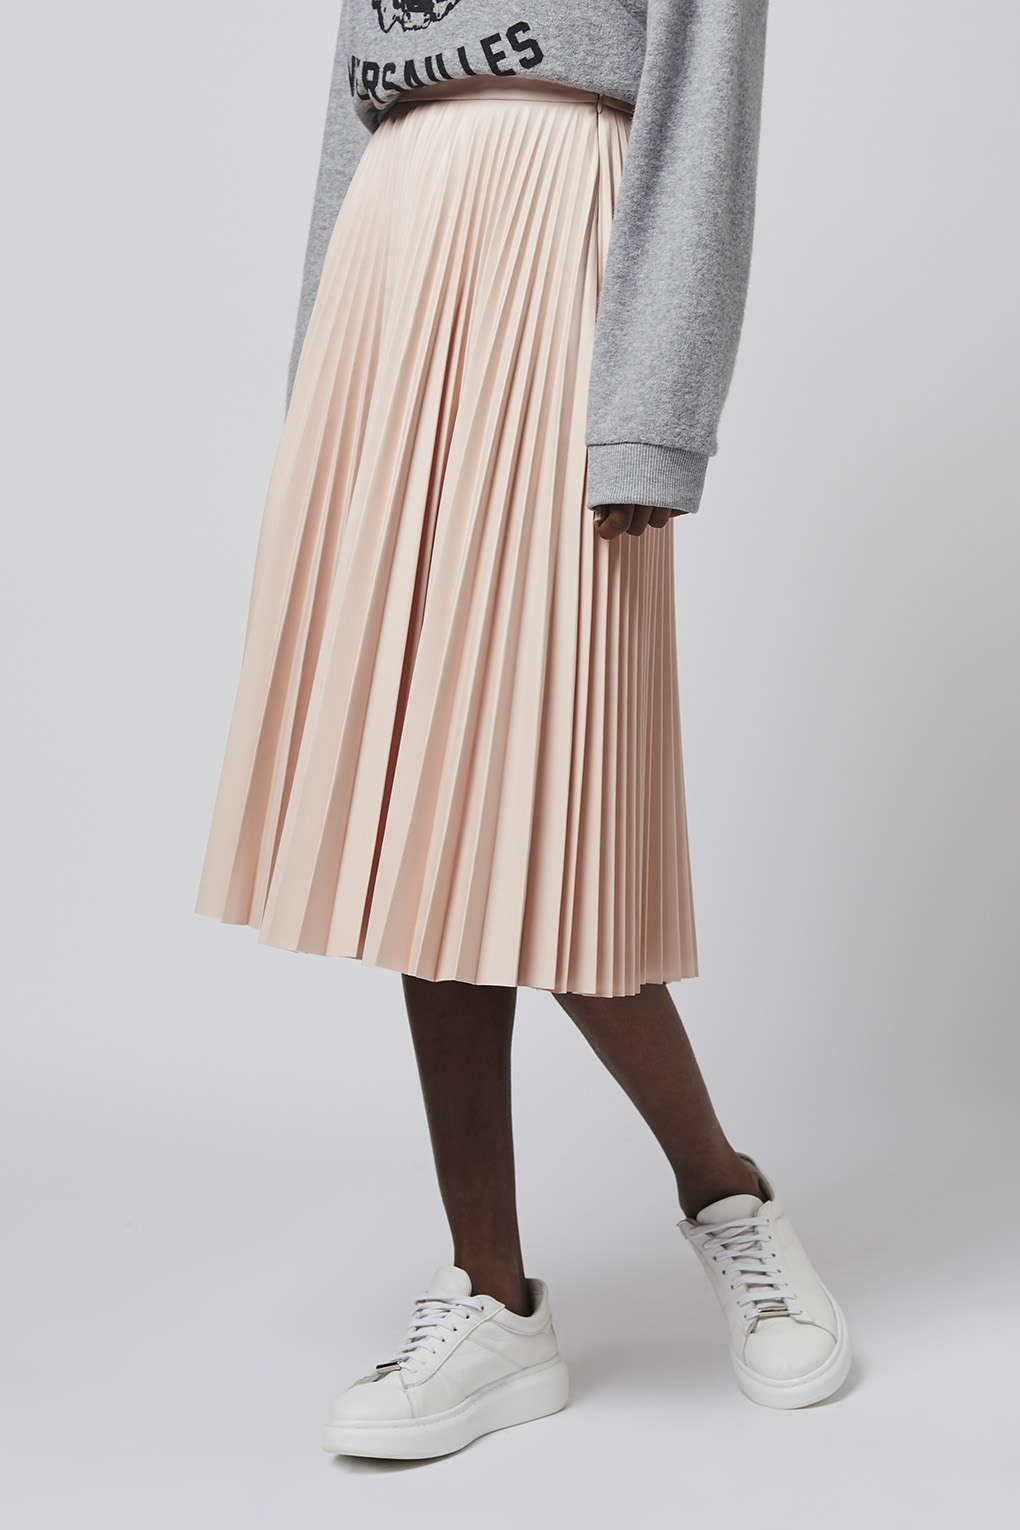 pale pink pleated midi skirt dress ala